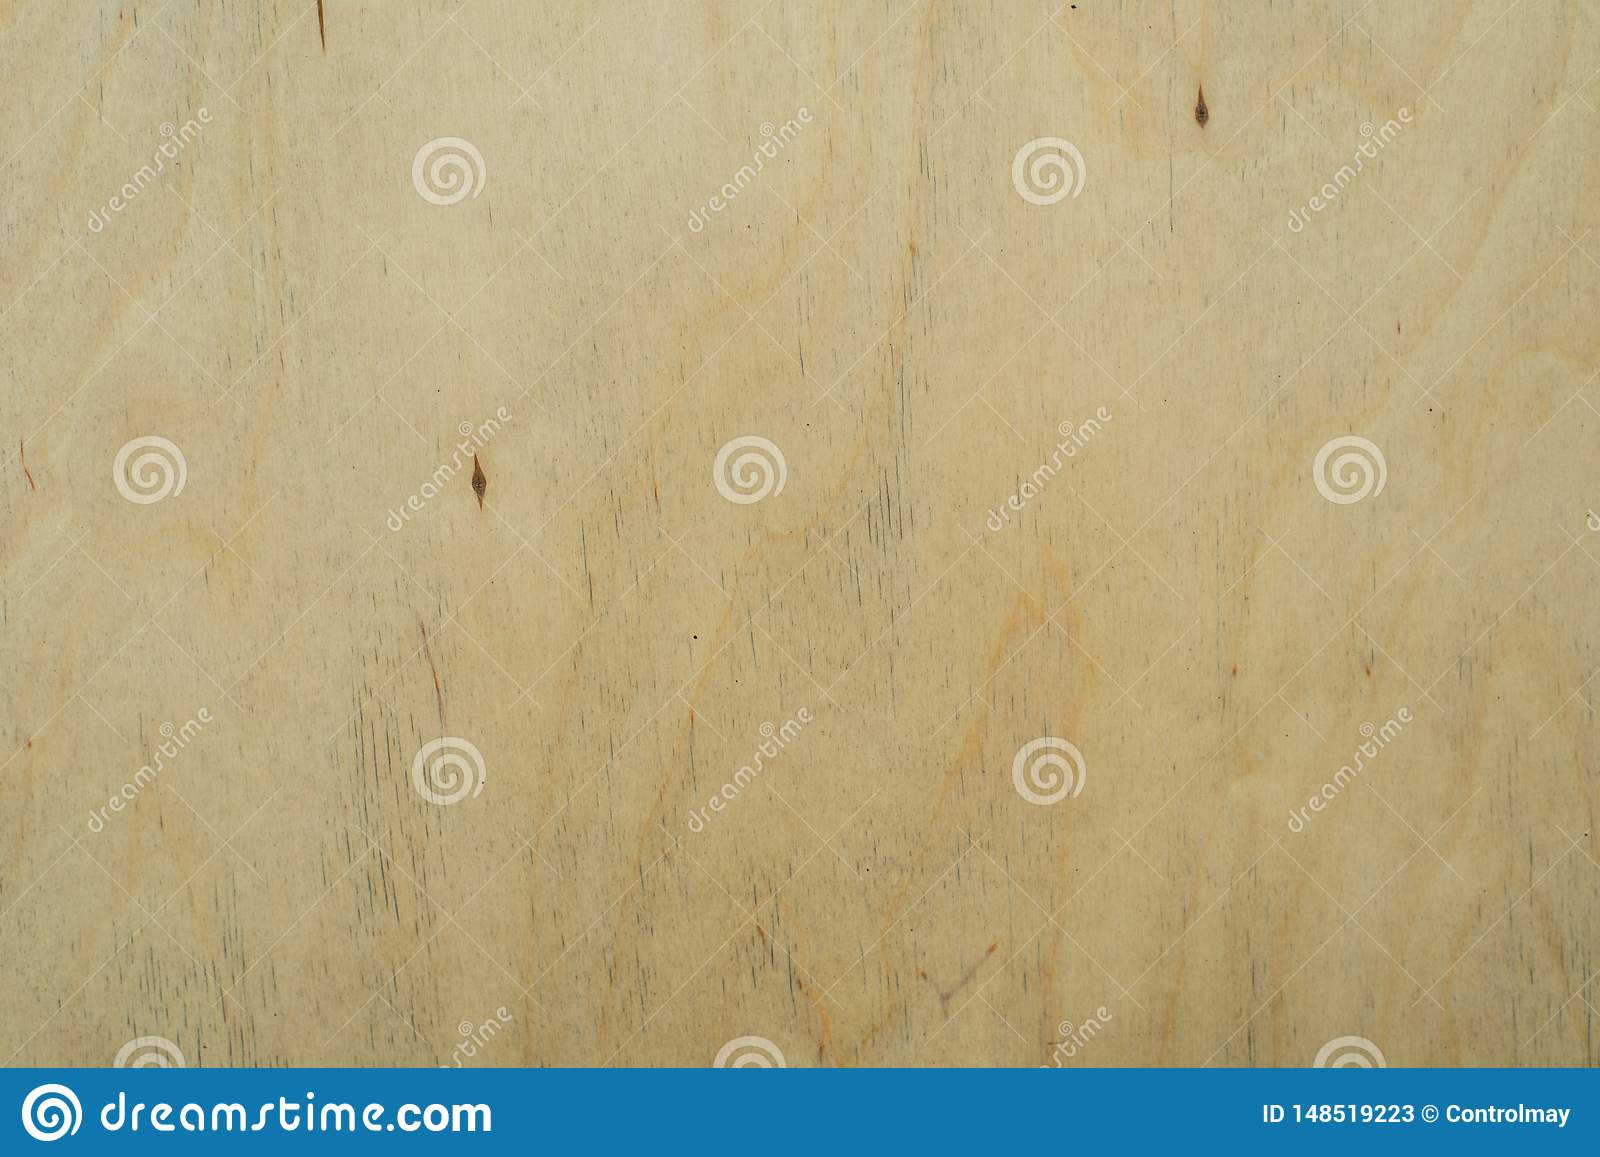 Wood texture and empty background.